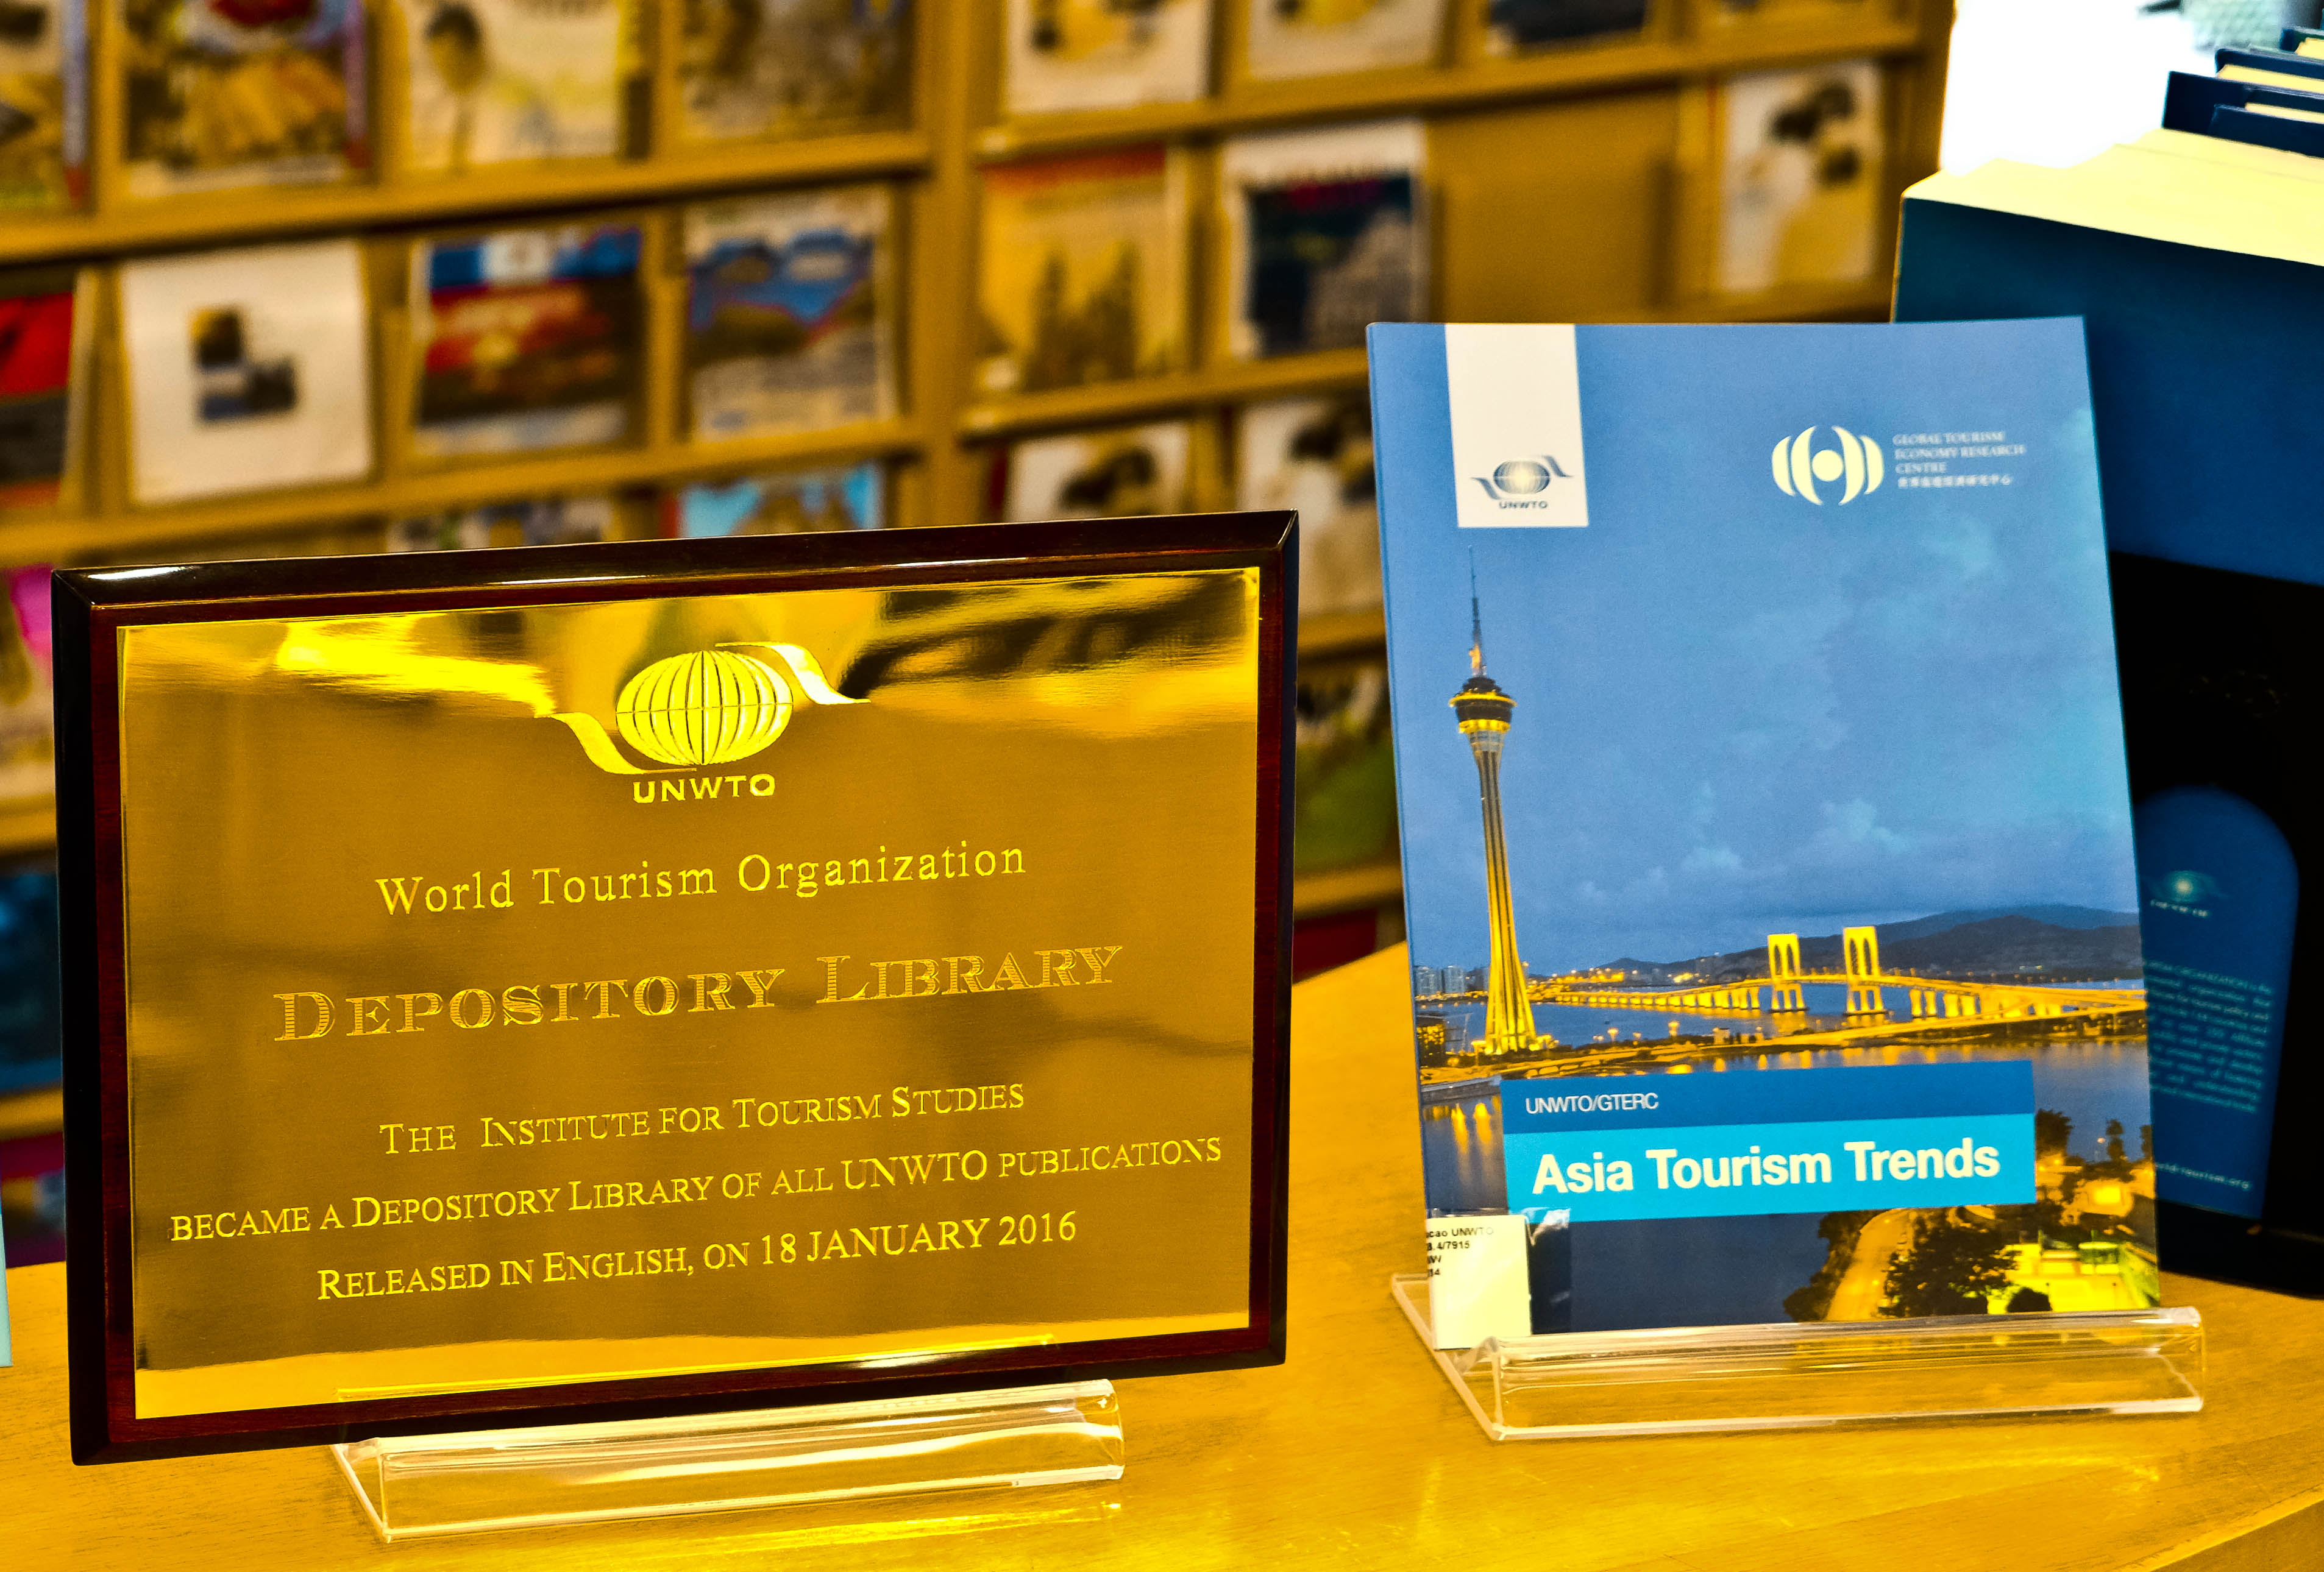 Ift news in january 2016 ift multimedia library has become the first world tourism organization unwto depository library in macao launched by unwto in 2003 publicscrutiny Choice Image